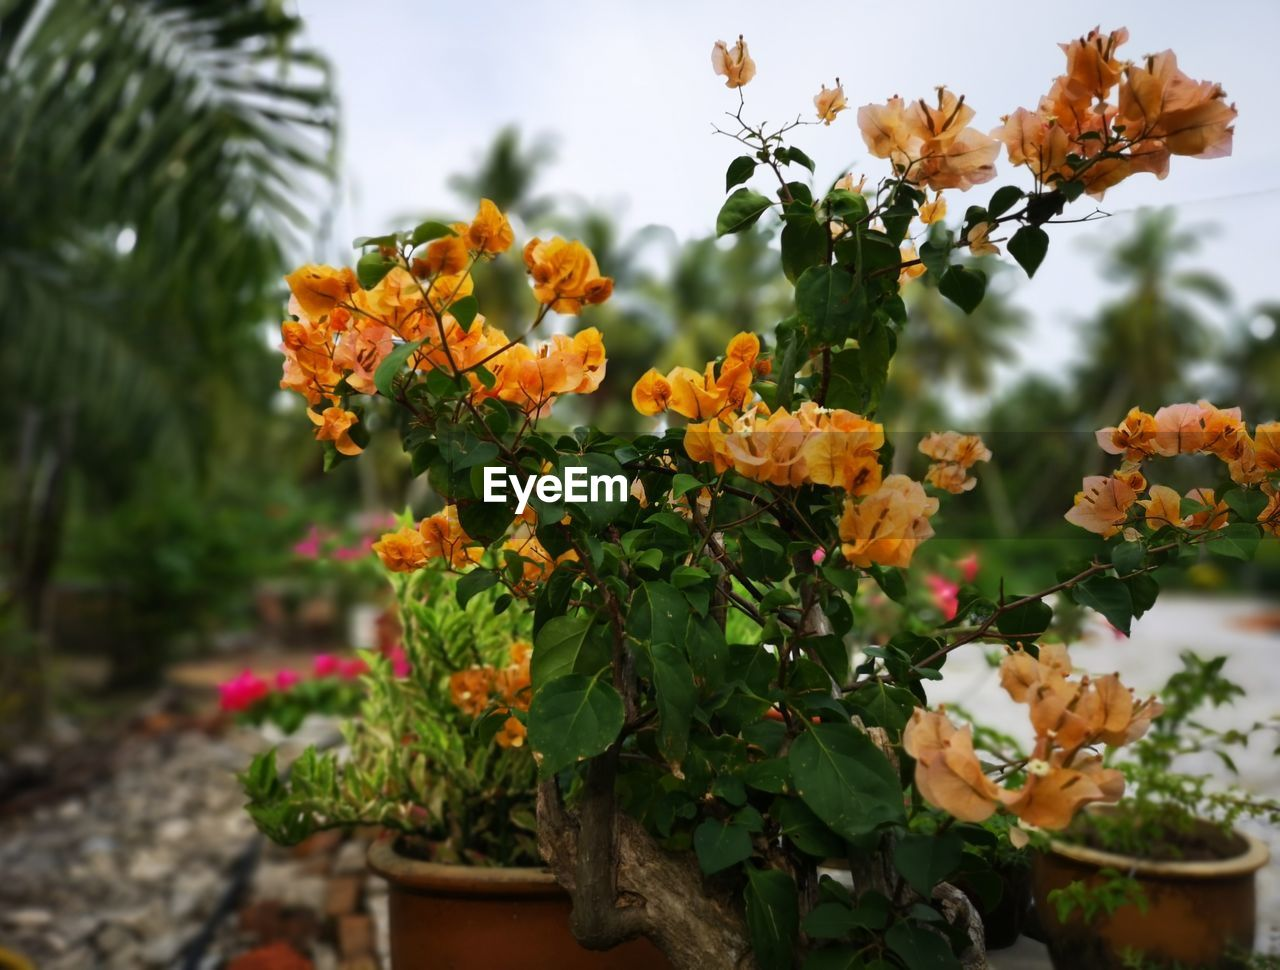 plant, flowering plant, flower, growth, beauty in nature, freshness, vulnerability, fragility, nature, focus on foreground, petal, no people, flower head, orange color, plant part, close-up, leaf, day, inflorescence, green color, lantana, outdoors